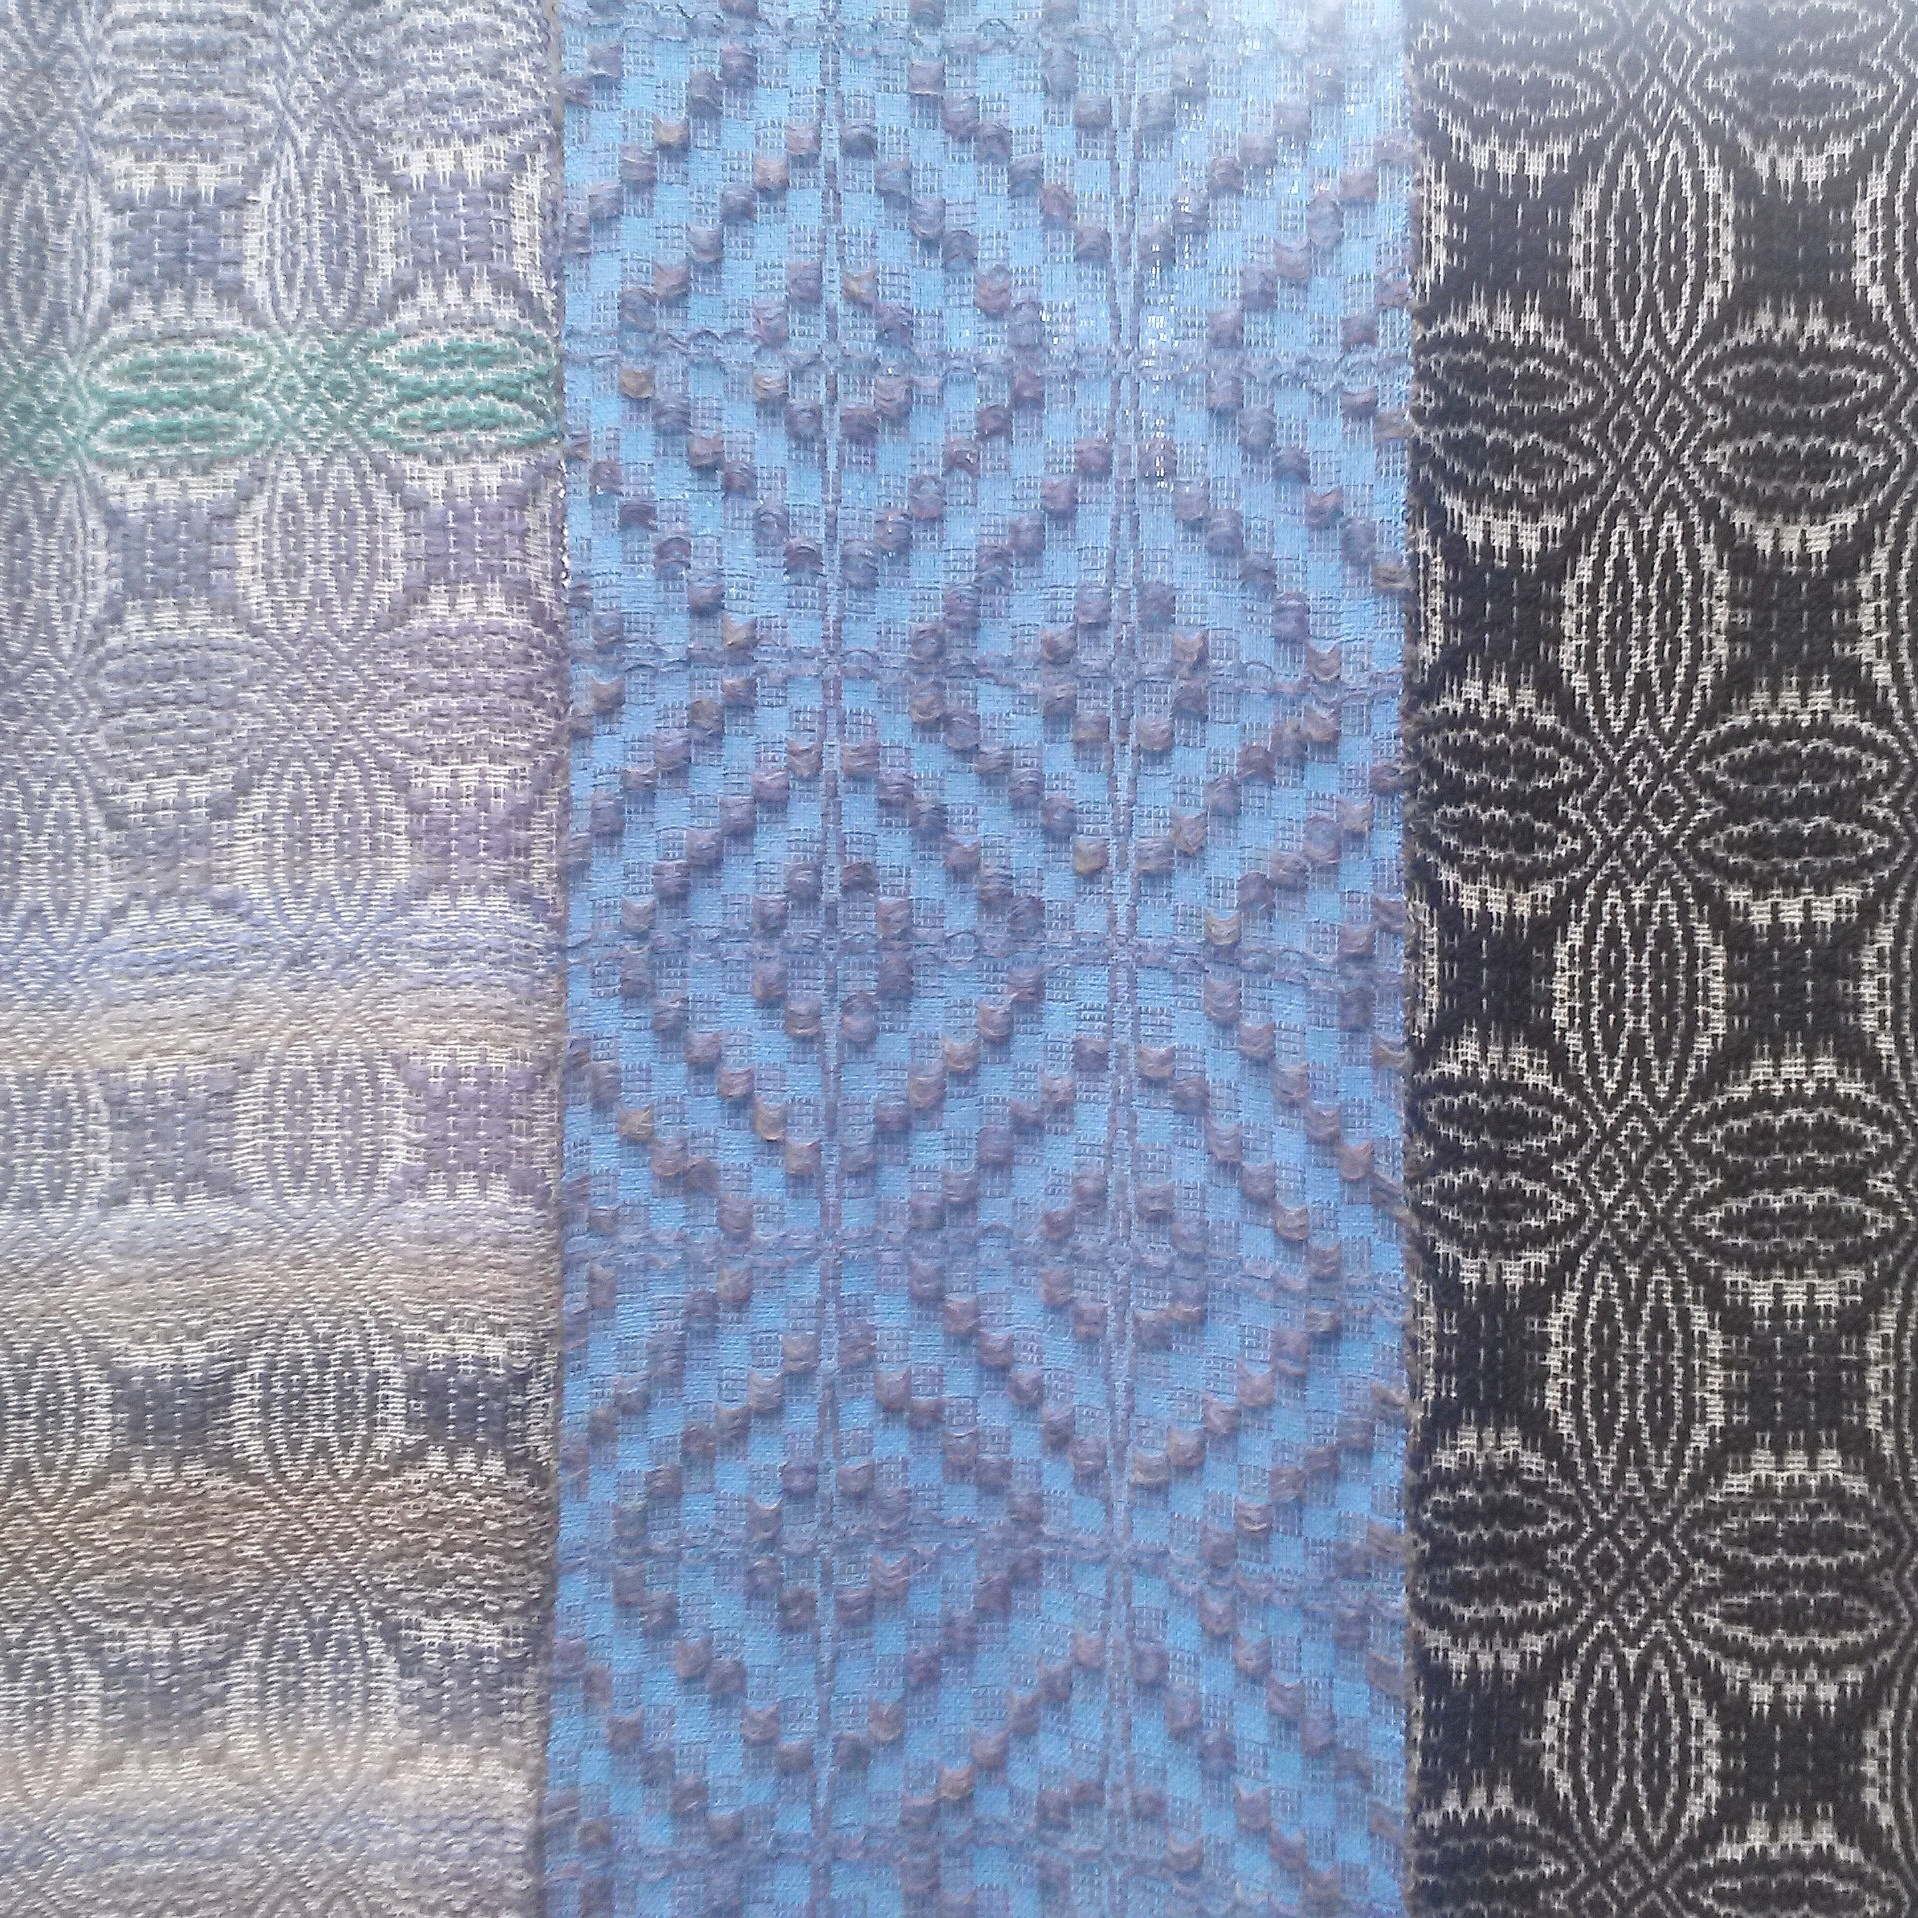 Handwoven cotton and wool